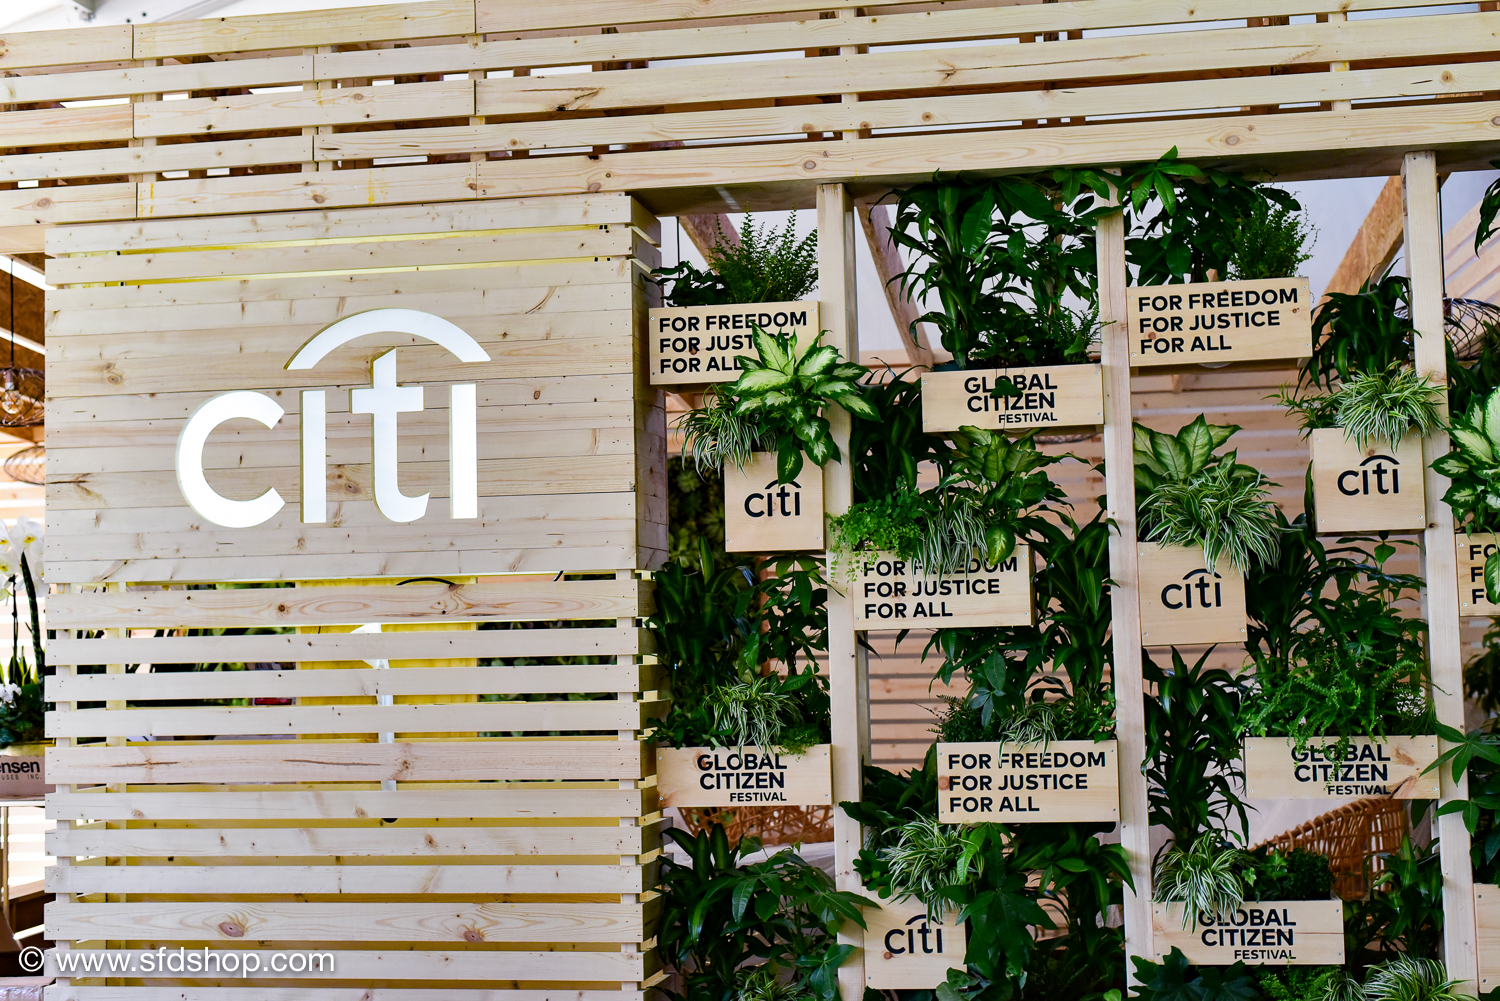 Citi Global Citizen Festival fabricated by SFDS-13.jpg